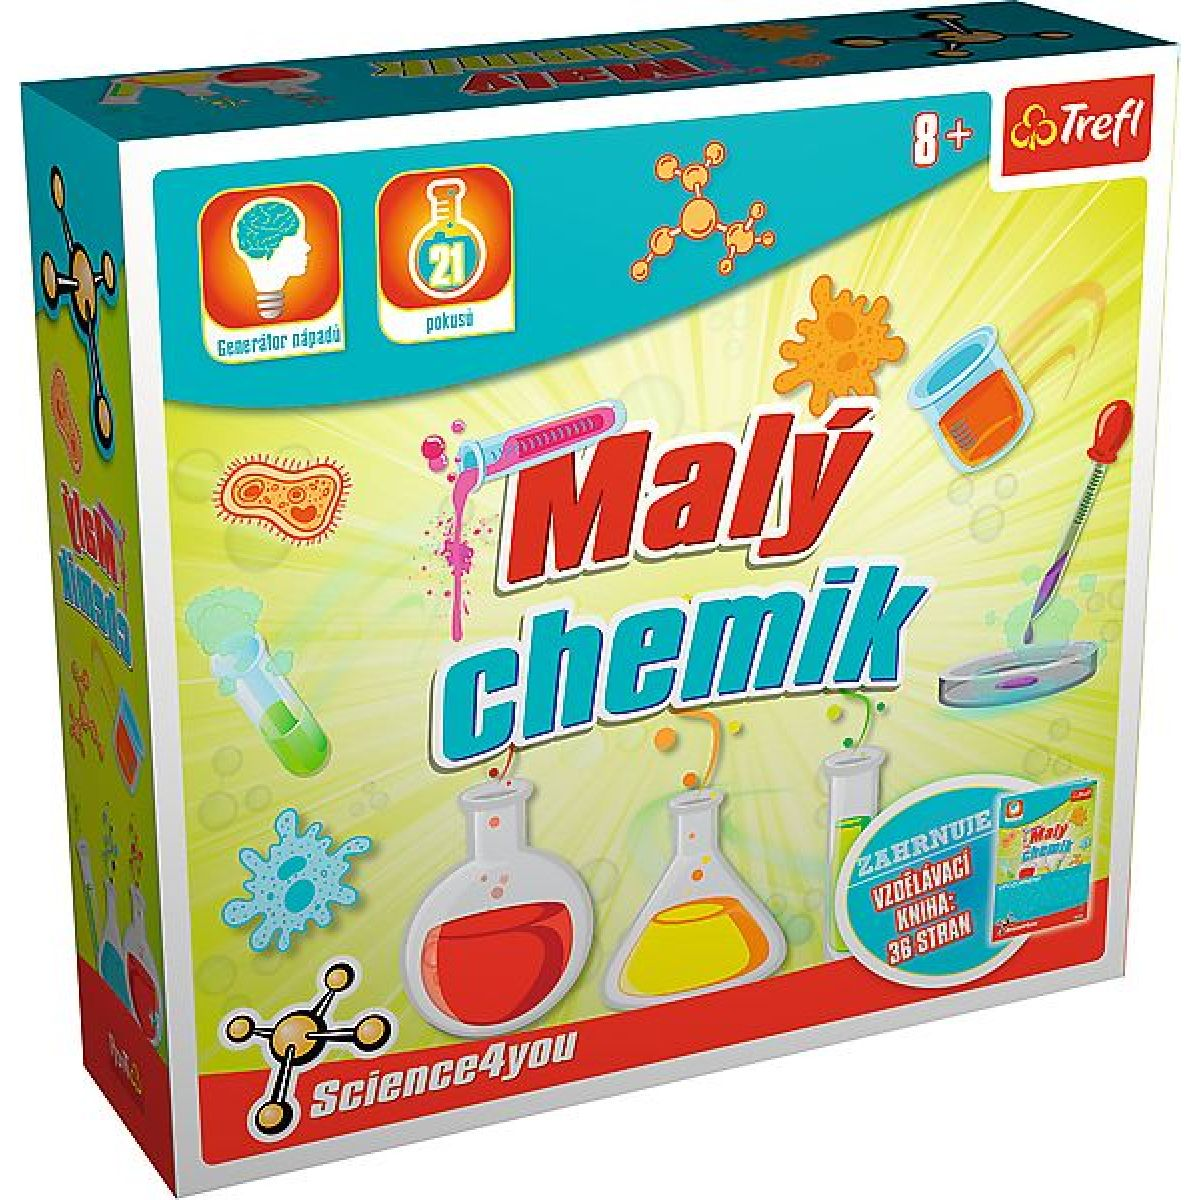 Trefl Malý chemik Science 4 you